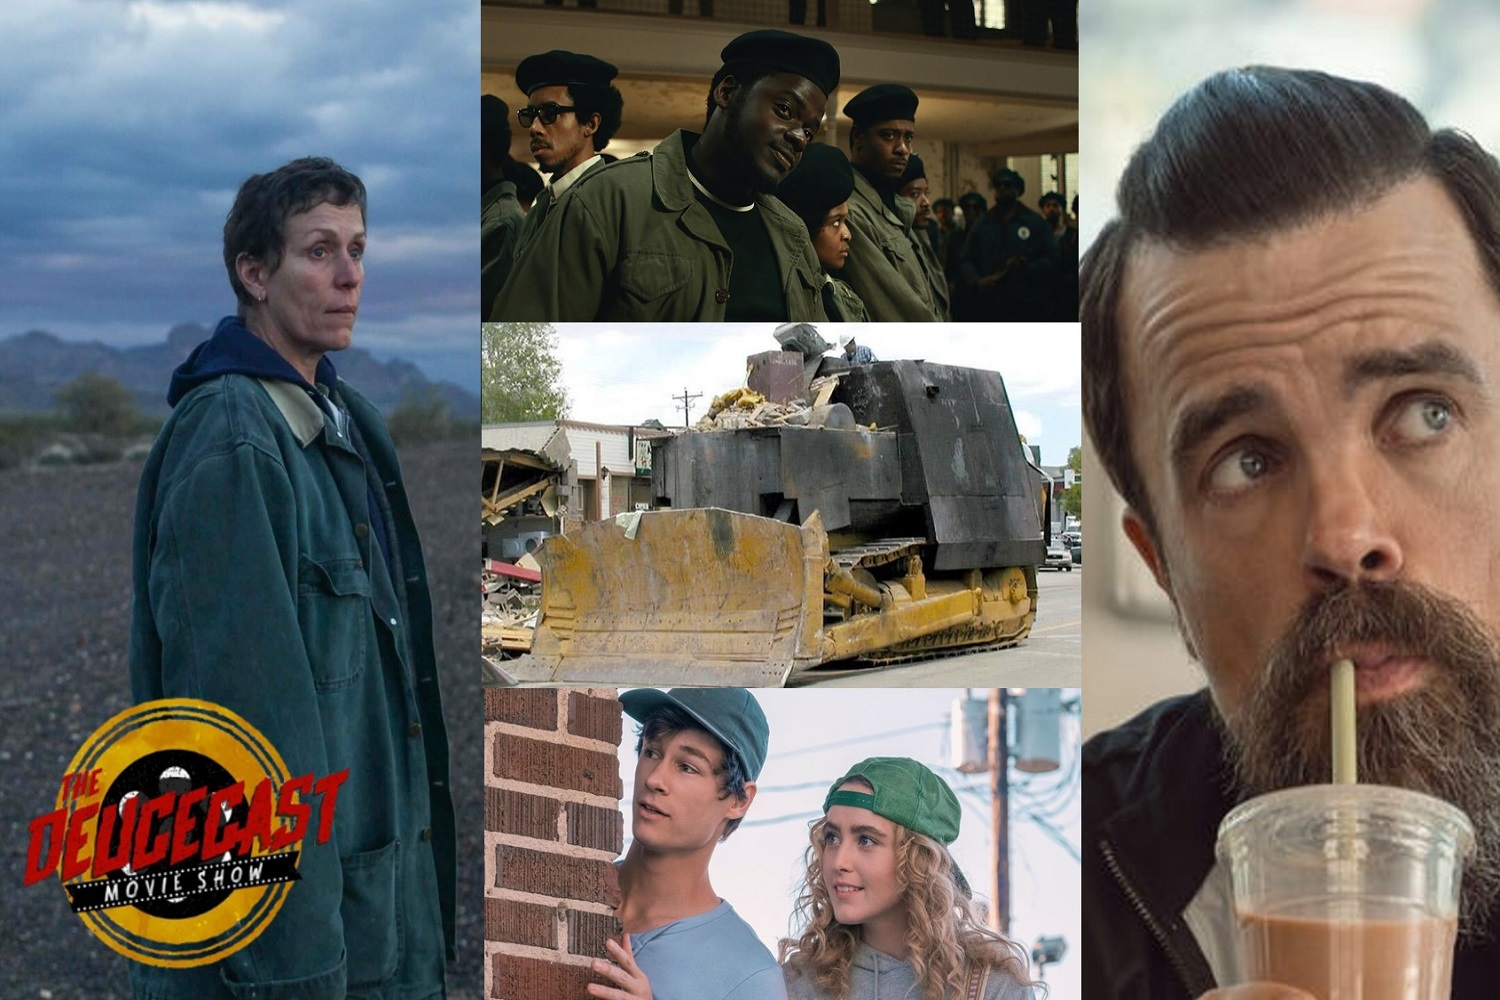 The Deucecast Movie Show #471: ReFlicktions The Modern Years